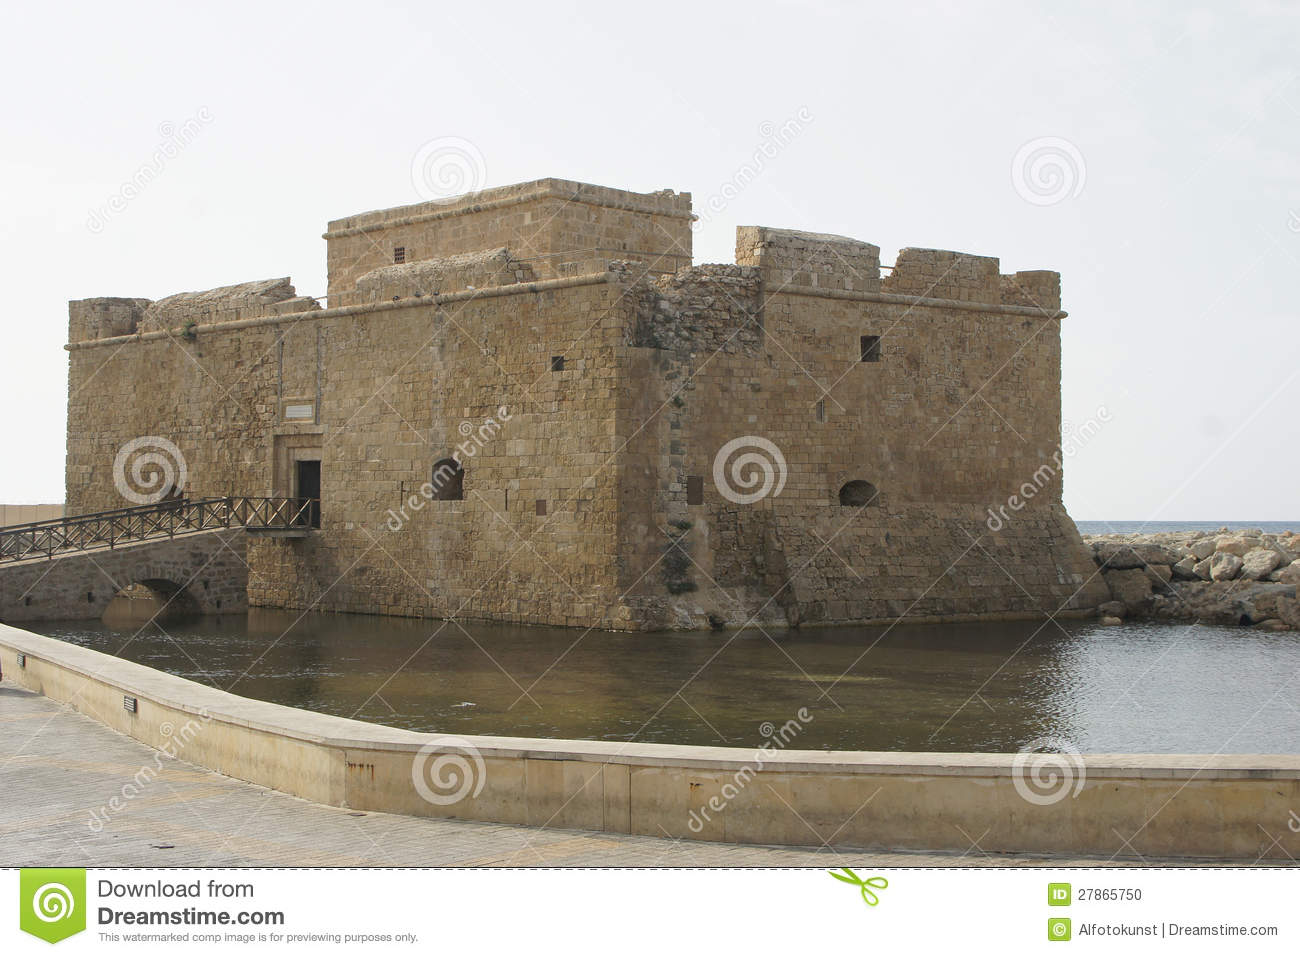 Antyczny Fort, Pafos, Cypr, Europa